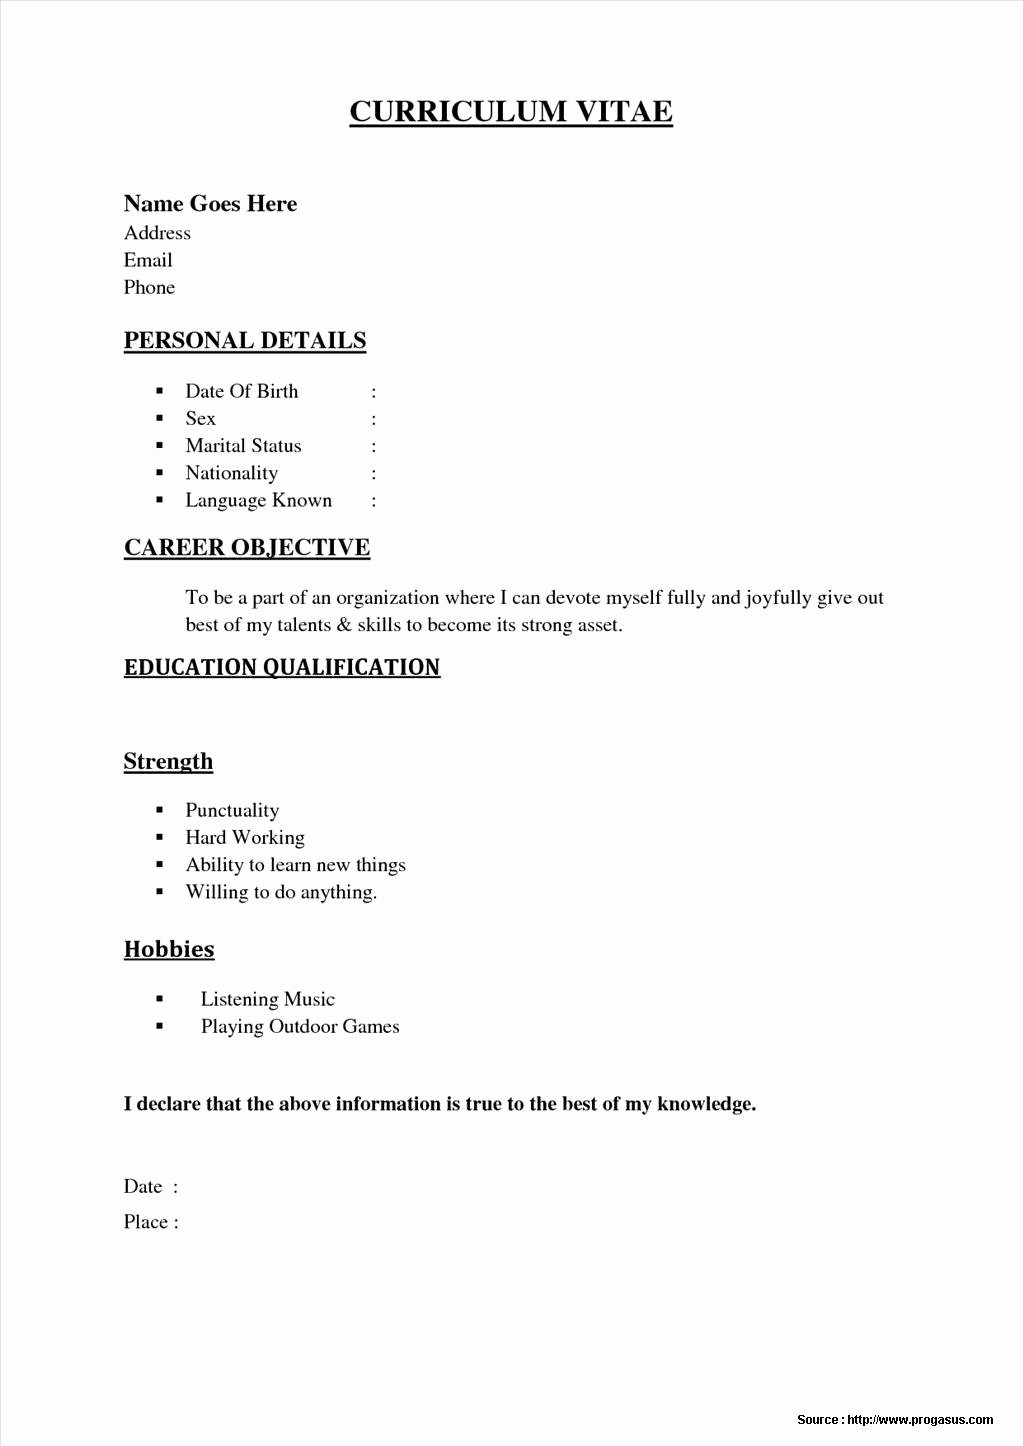 Free Quick and Easy Resume Builder Resume Resume